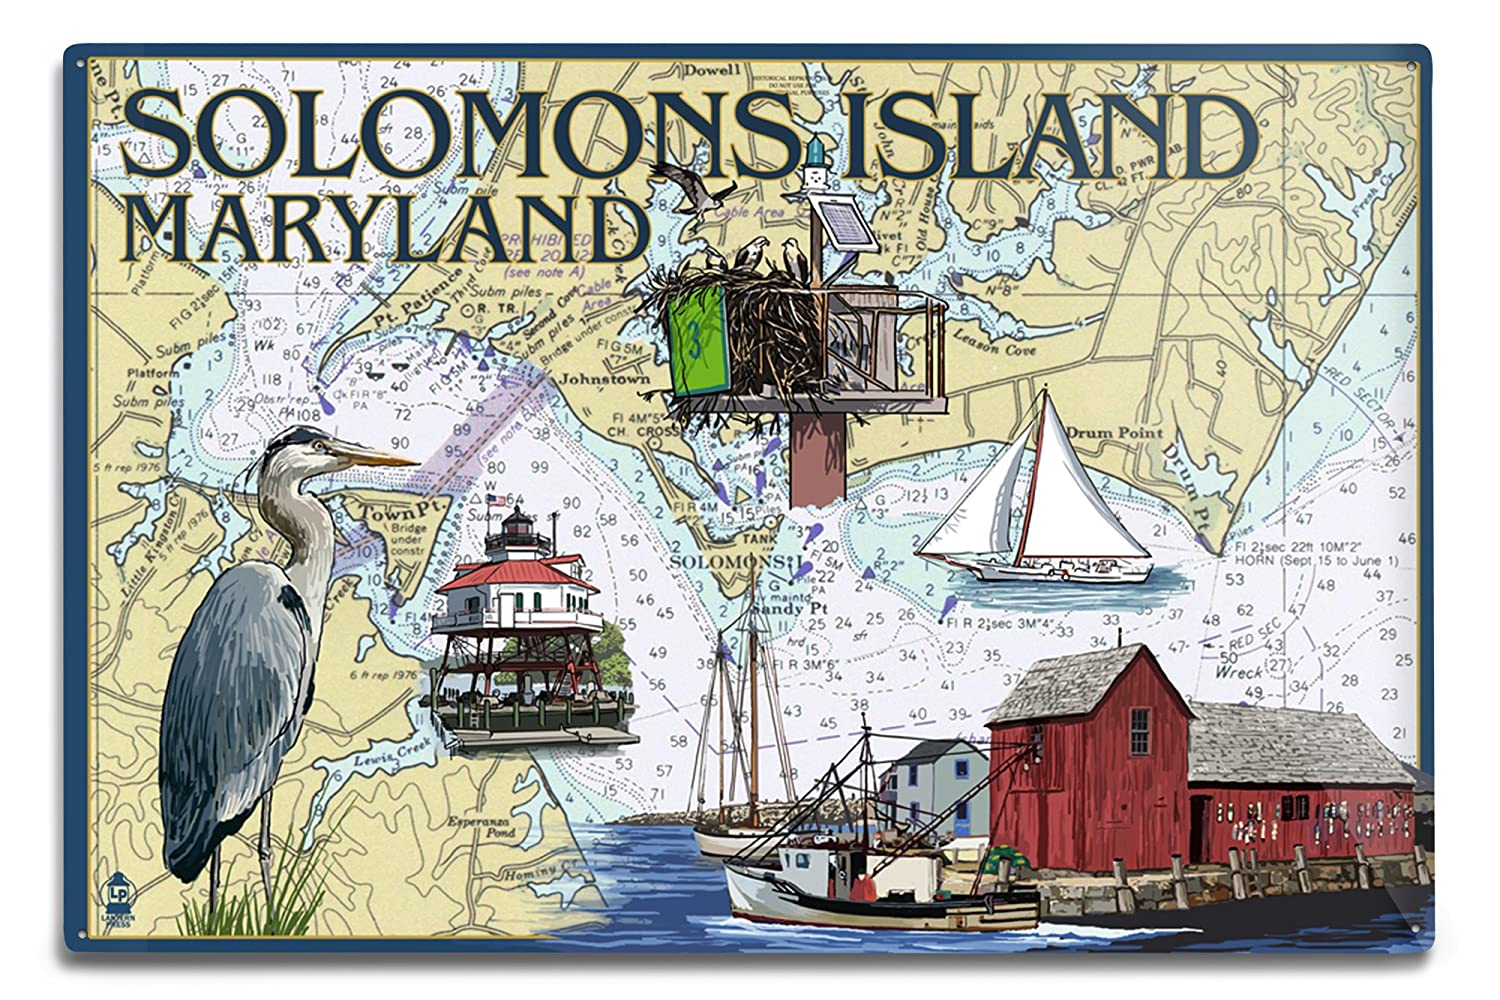 Solomons島、メリーランド州 – Nautical Chart 12 x 18 Metal Sign LANT-33994-12x18M B06Y1FF14T 12 x 18 Metal Sign12 x 18 Metal Sign